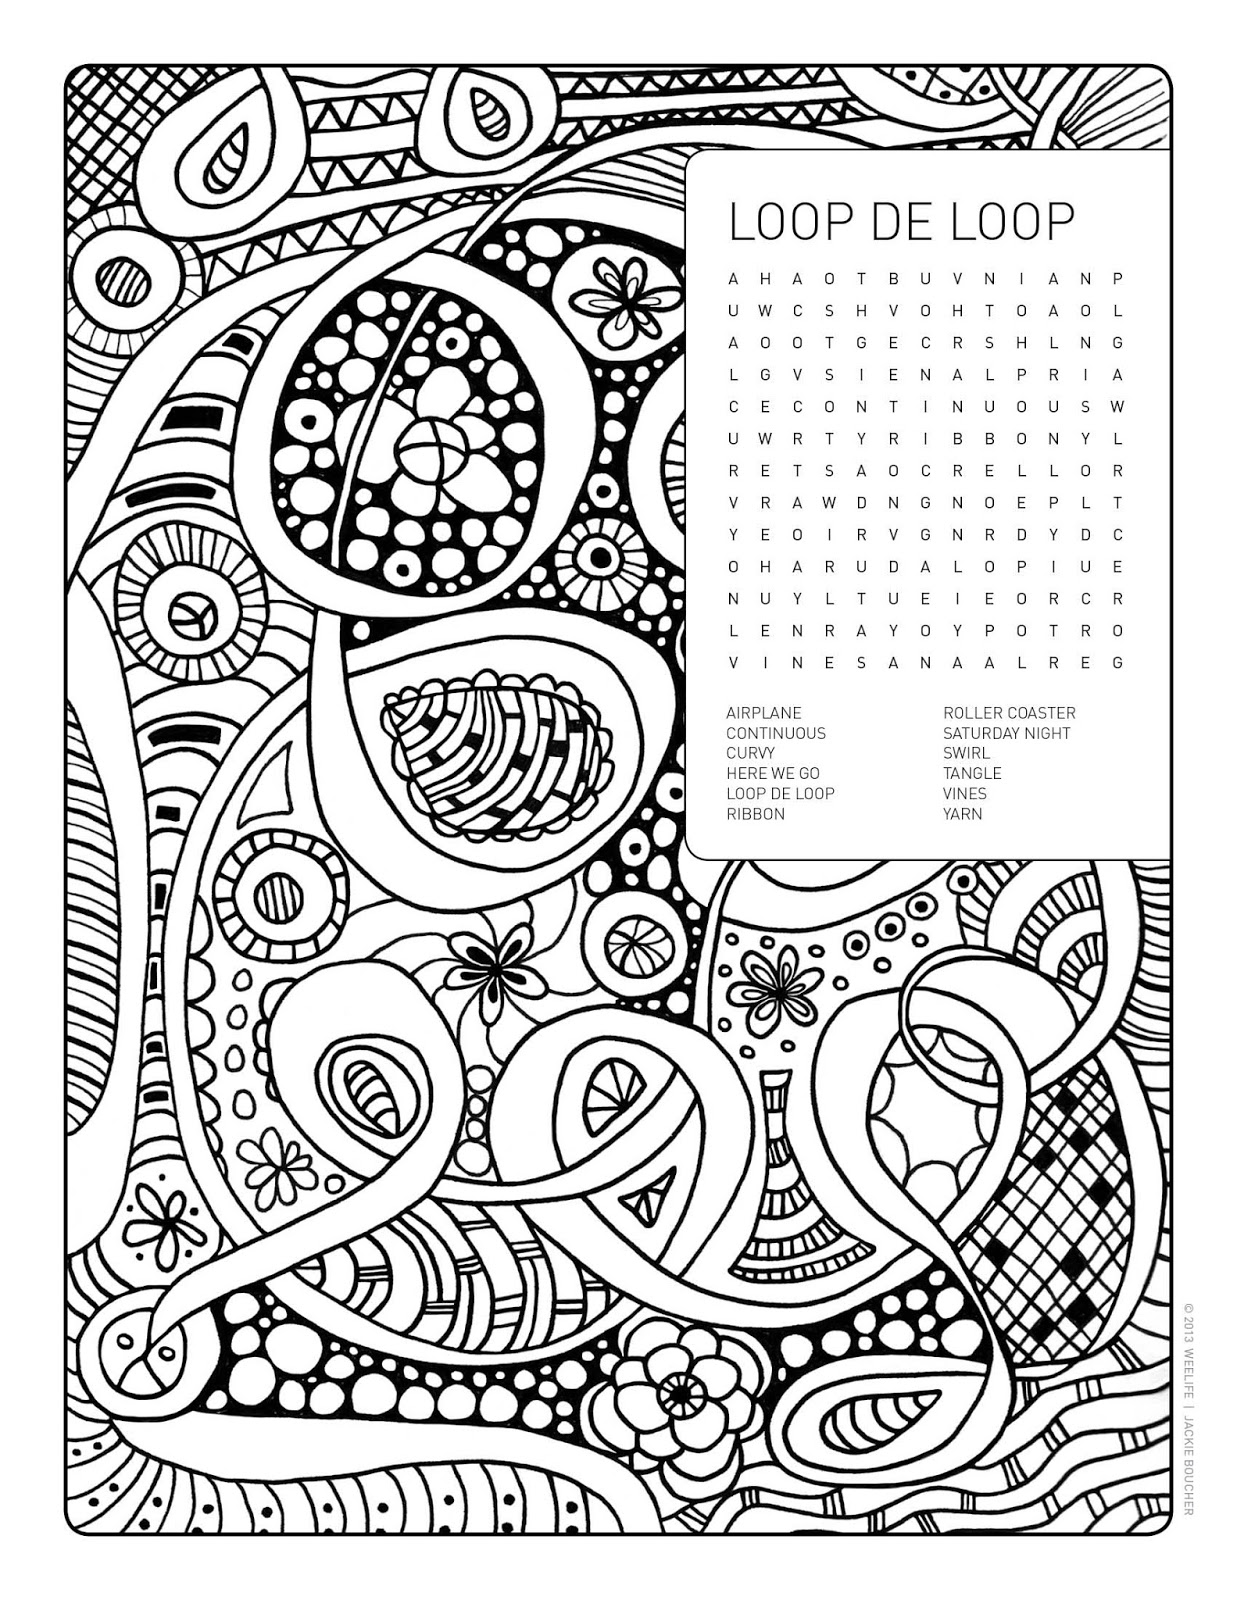 Weelife Word Search Colouring Page Loopdeloop